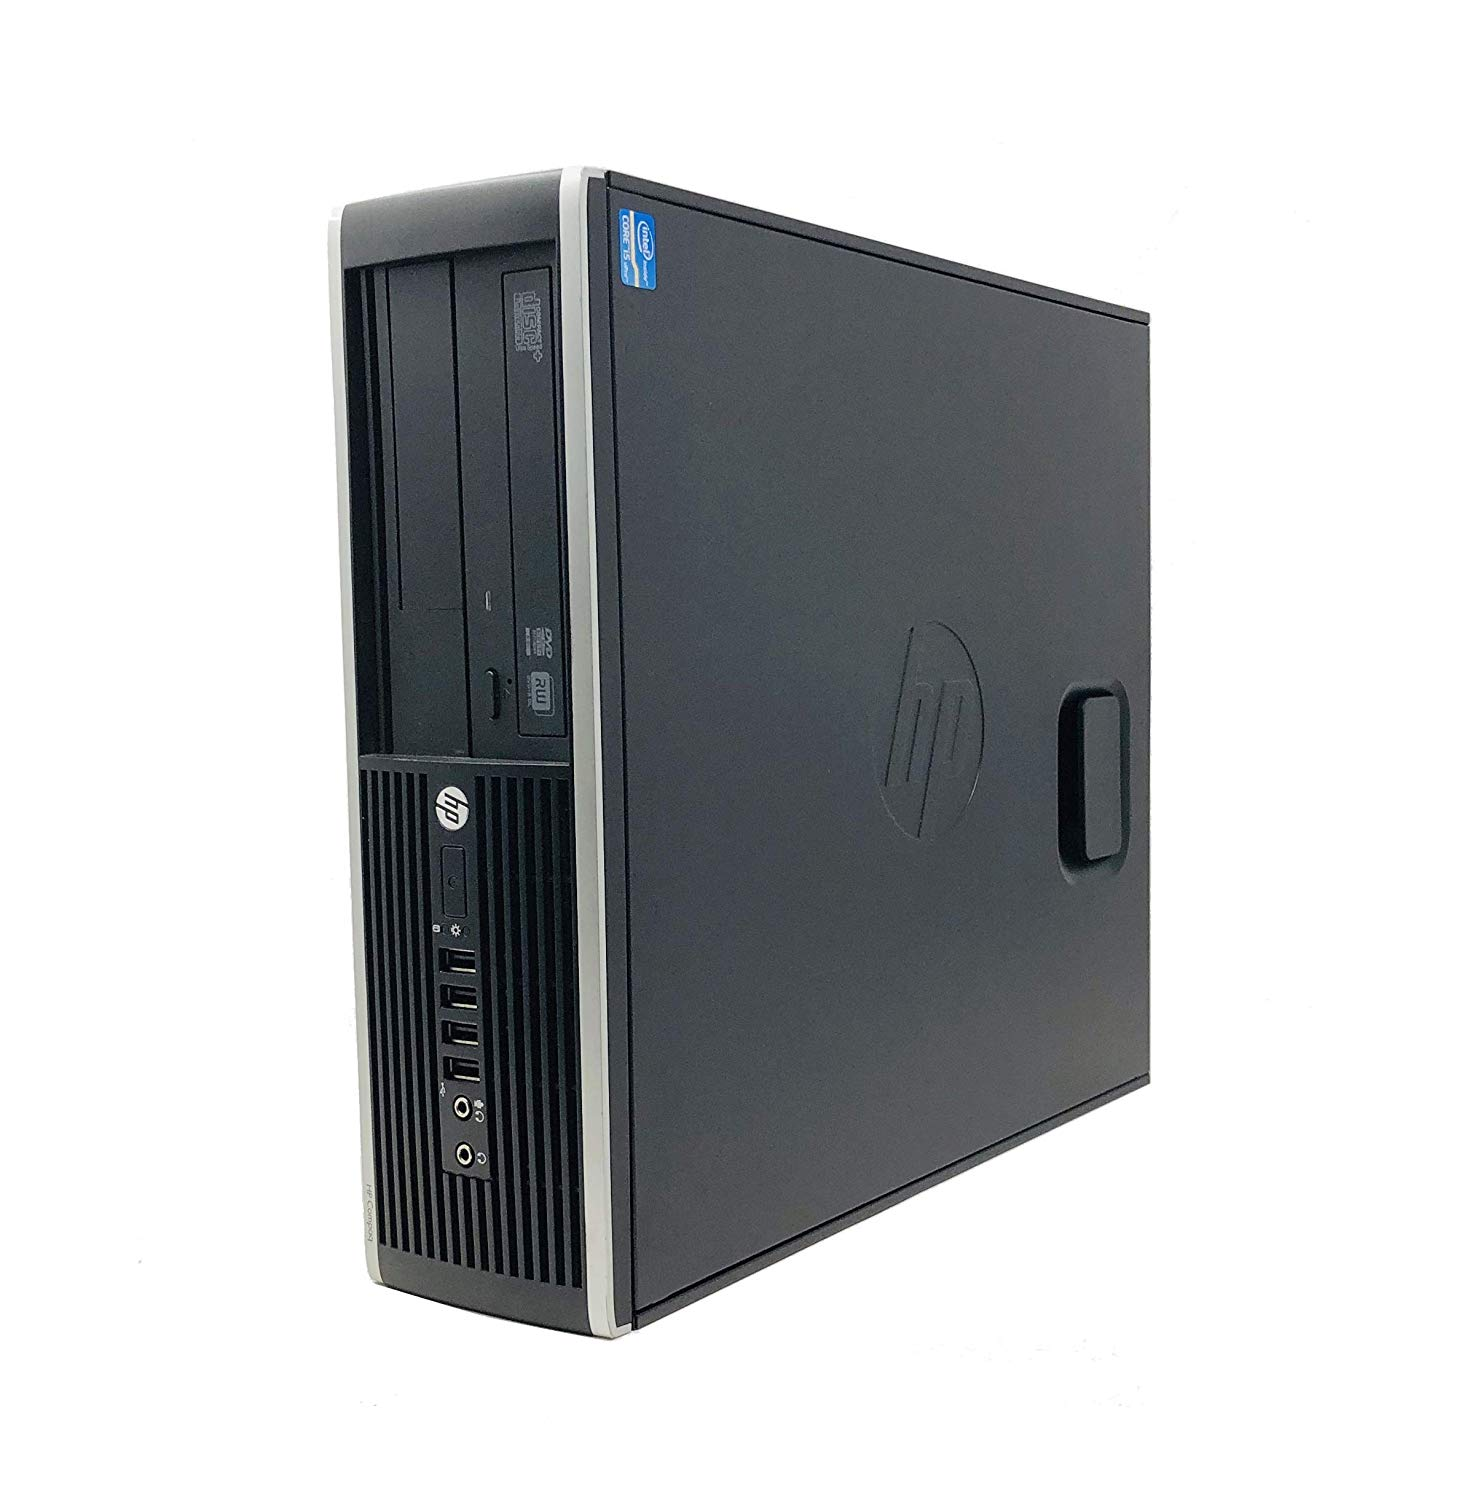 Hp Elite 8200 - Ordenador de sobremesa (<font><b>Intel</b></font> <font><b>i5</b></font>-<font><b>2400</b></font>, 8GB de RAM, Disco HDD de 250GB, Windows 7 PRO ) - (Reacondicionado) image